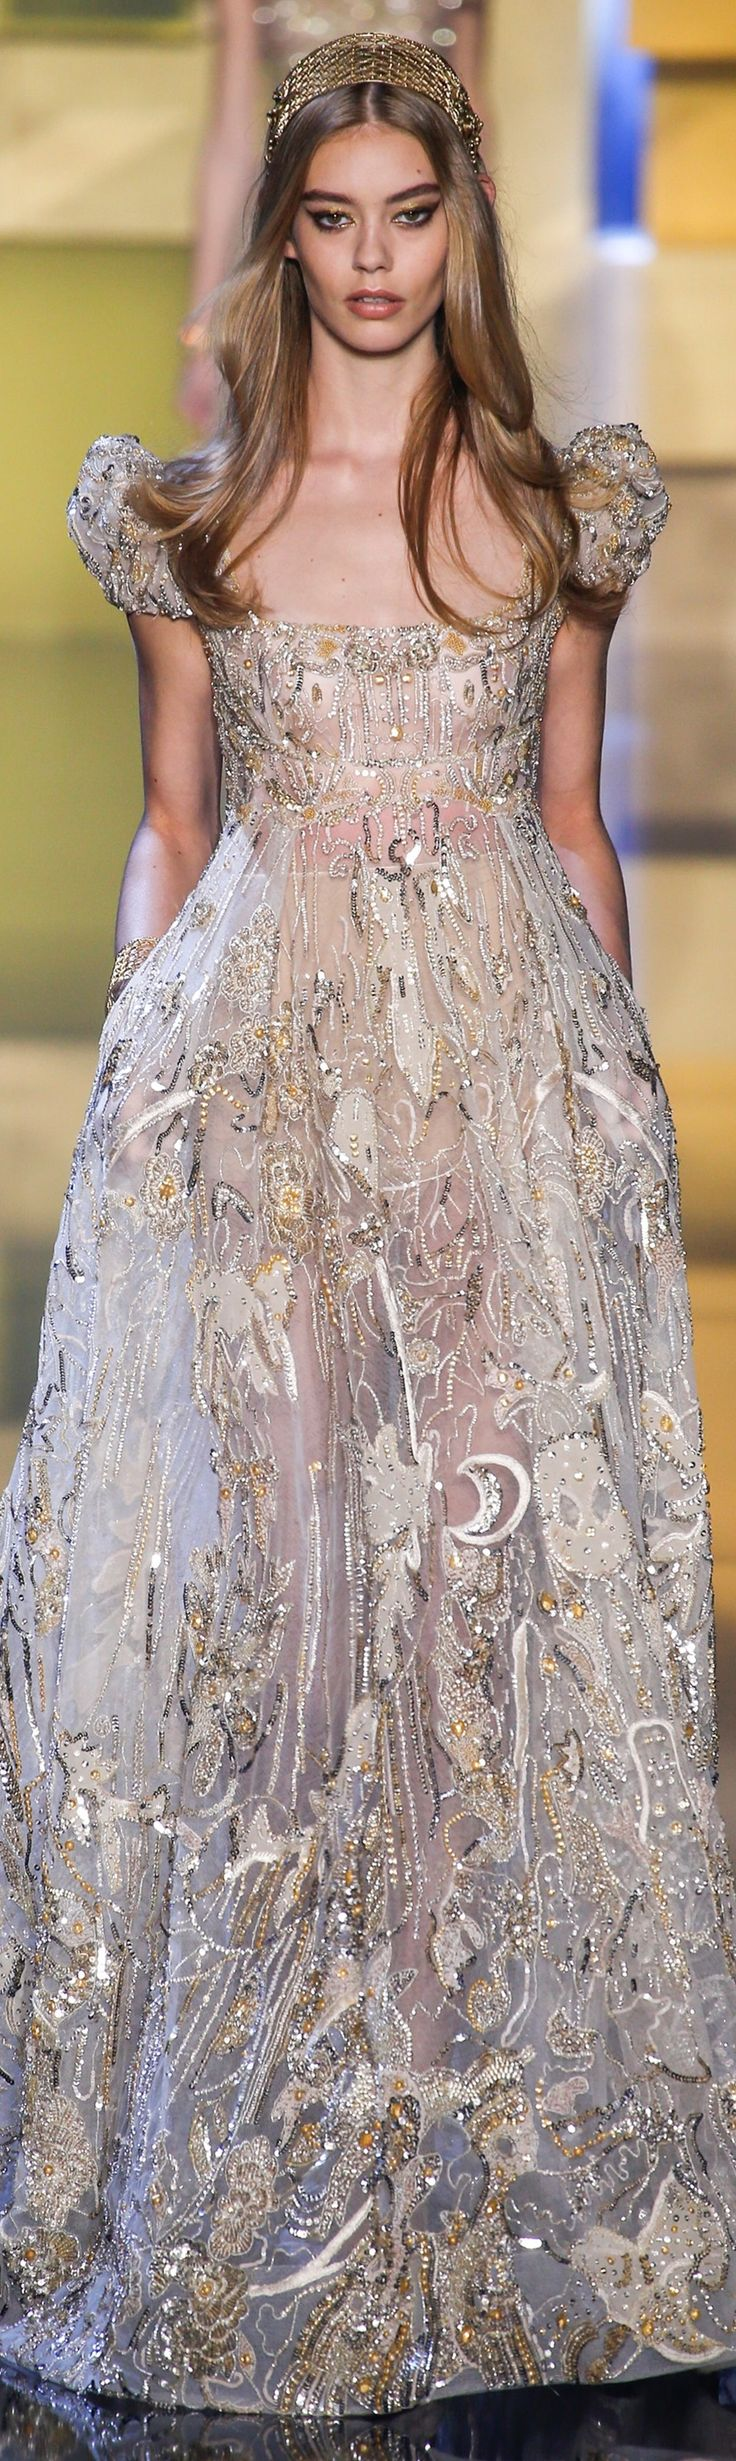 This dress reminds me of fairy tales where there are princesses of the sun, moon, and stars.